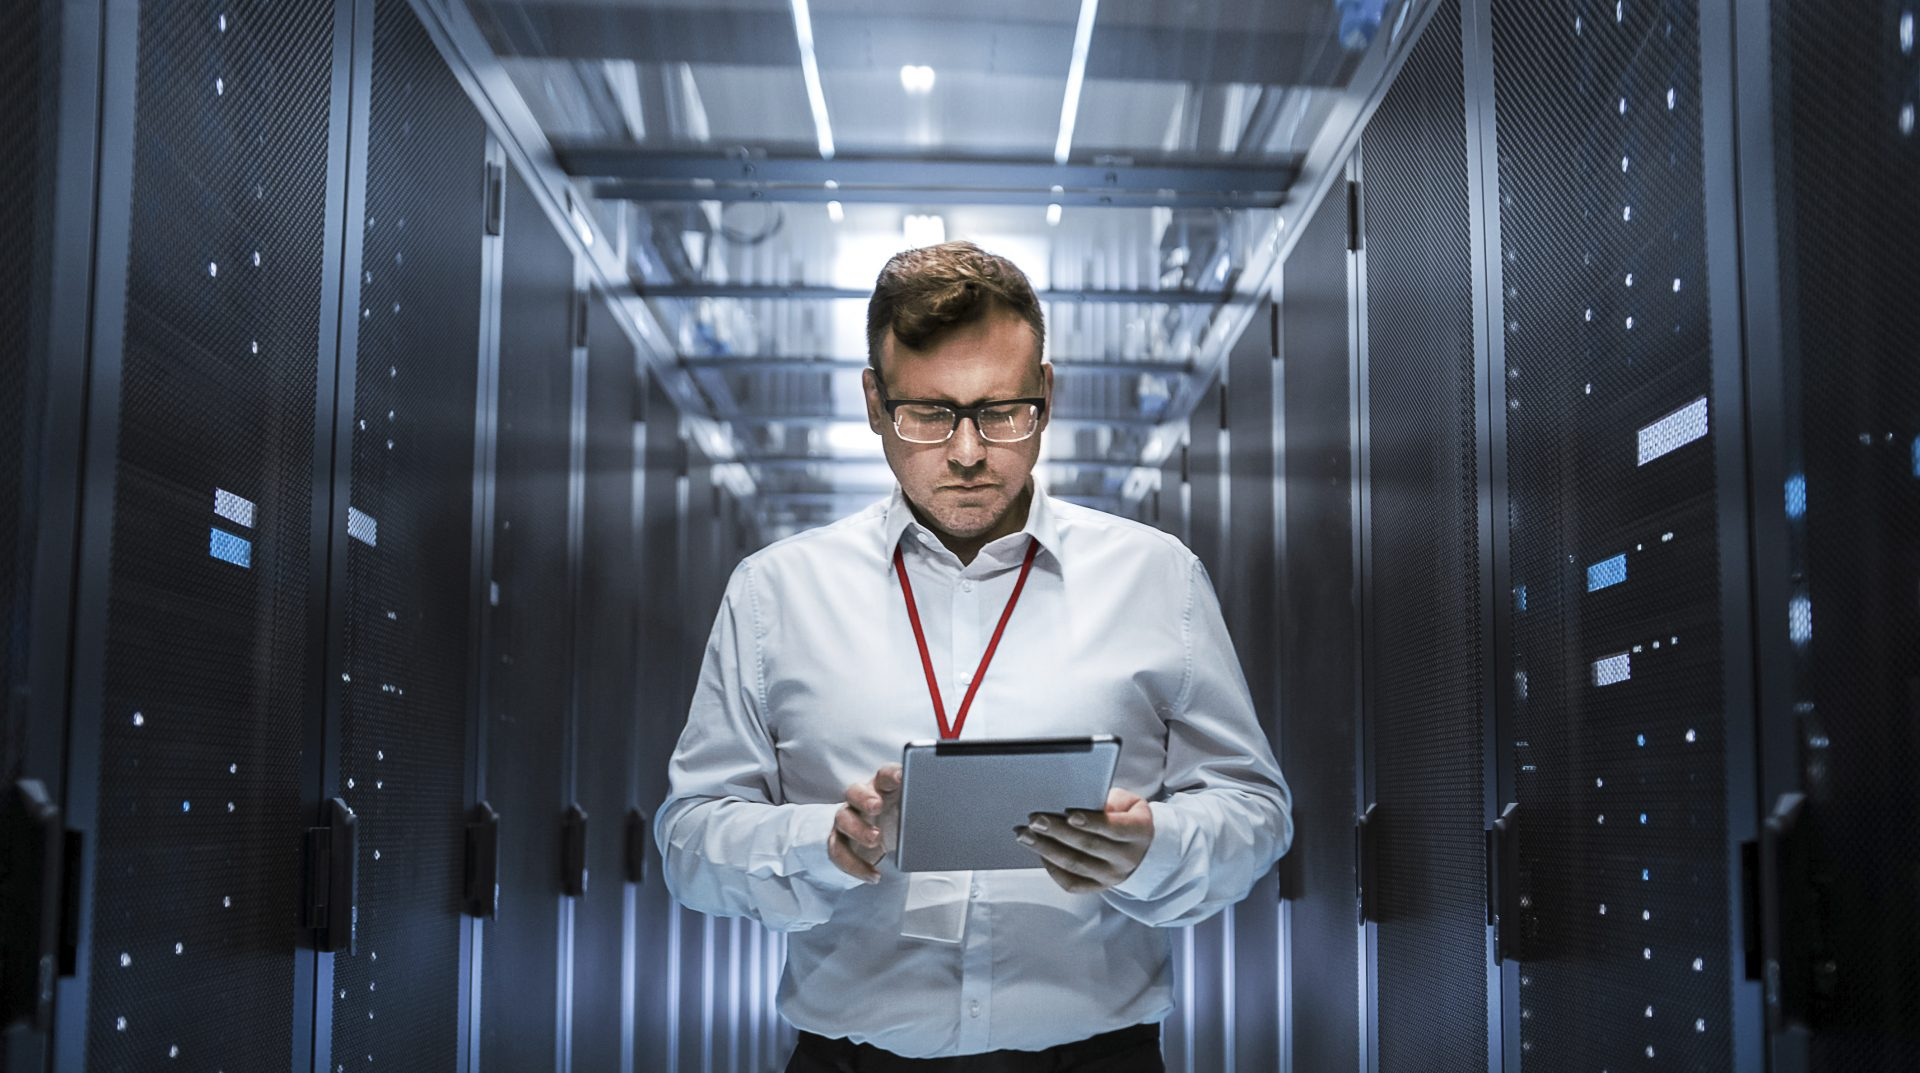 IT Technician Walks Through Rows of Server Racks in Data Centre. Simultaneously He Works on a Tablet Computer.